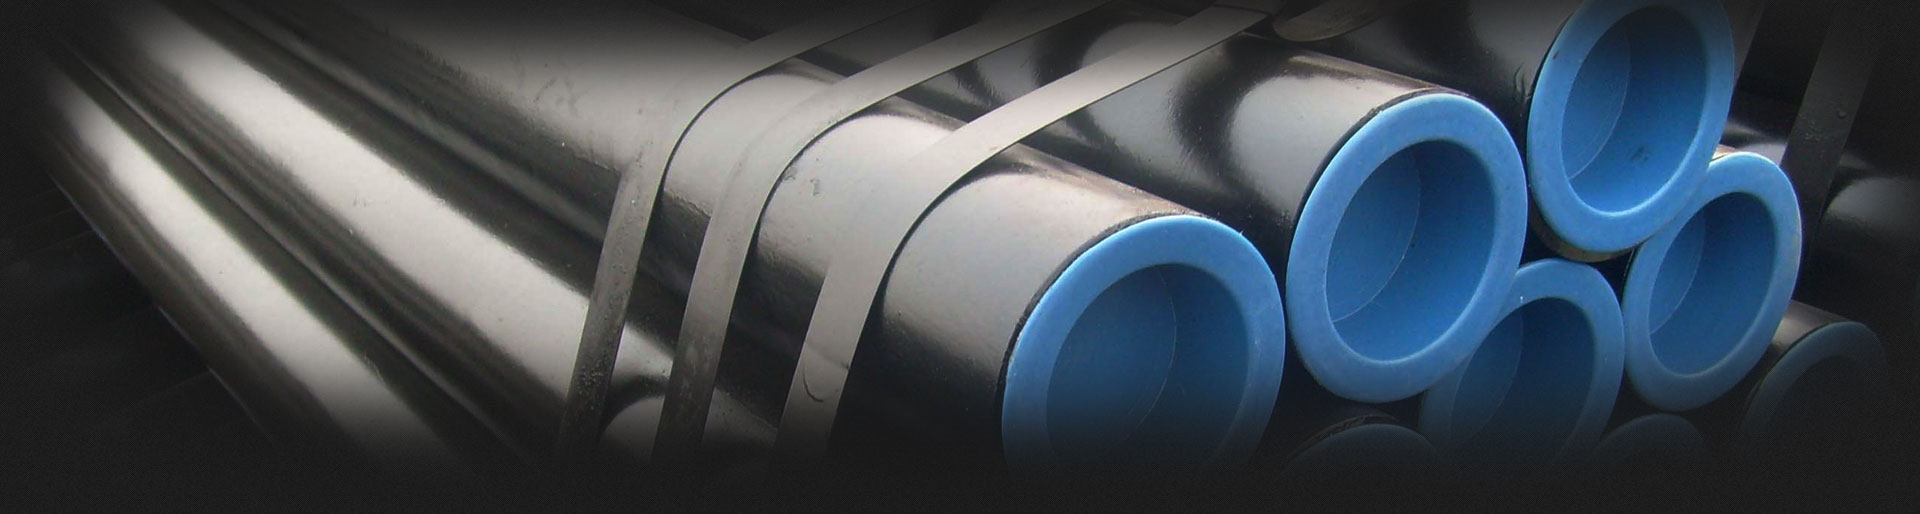 HEAVY WALL PIPE u0026 TUBE We start by providing the best in carbon stainless steel steel alloy and aluminum tubing that is created with the highest ... & US Tube Supply Services | HEAVY WALL PIPE u0026 TUBE - US Tube Supply